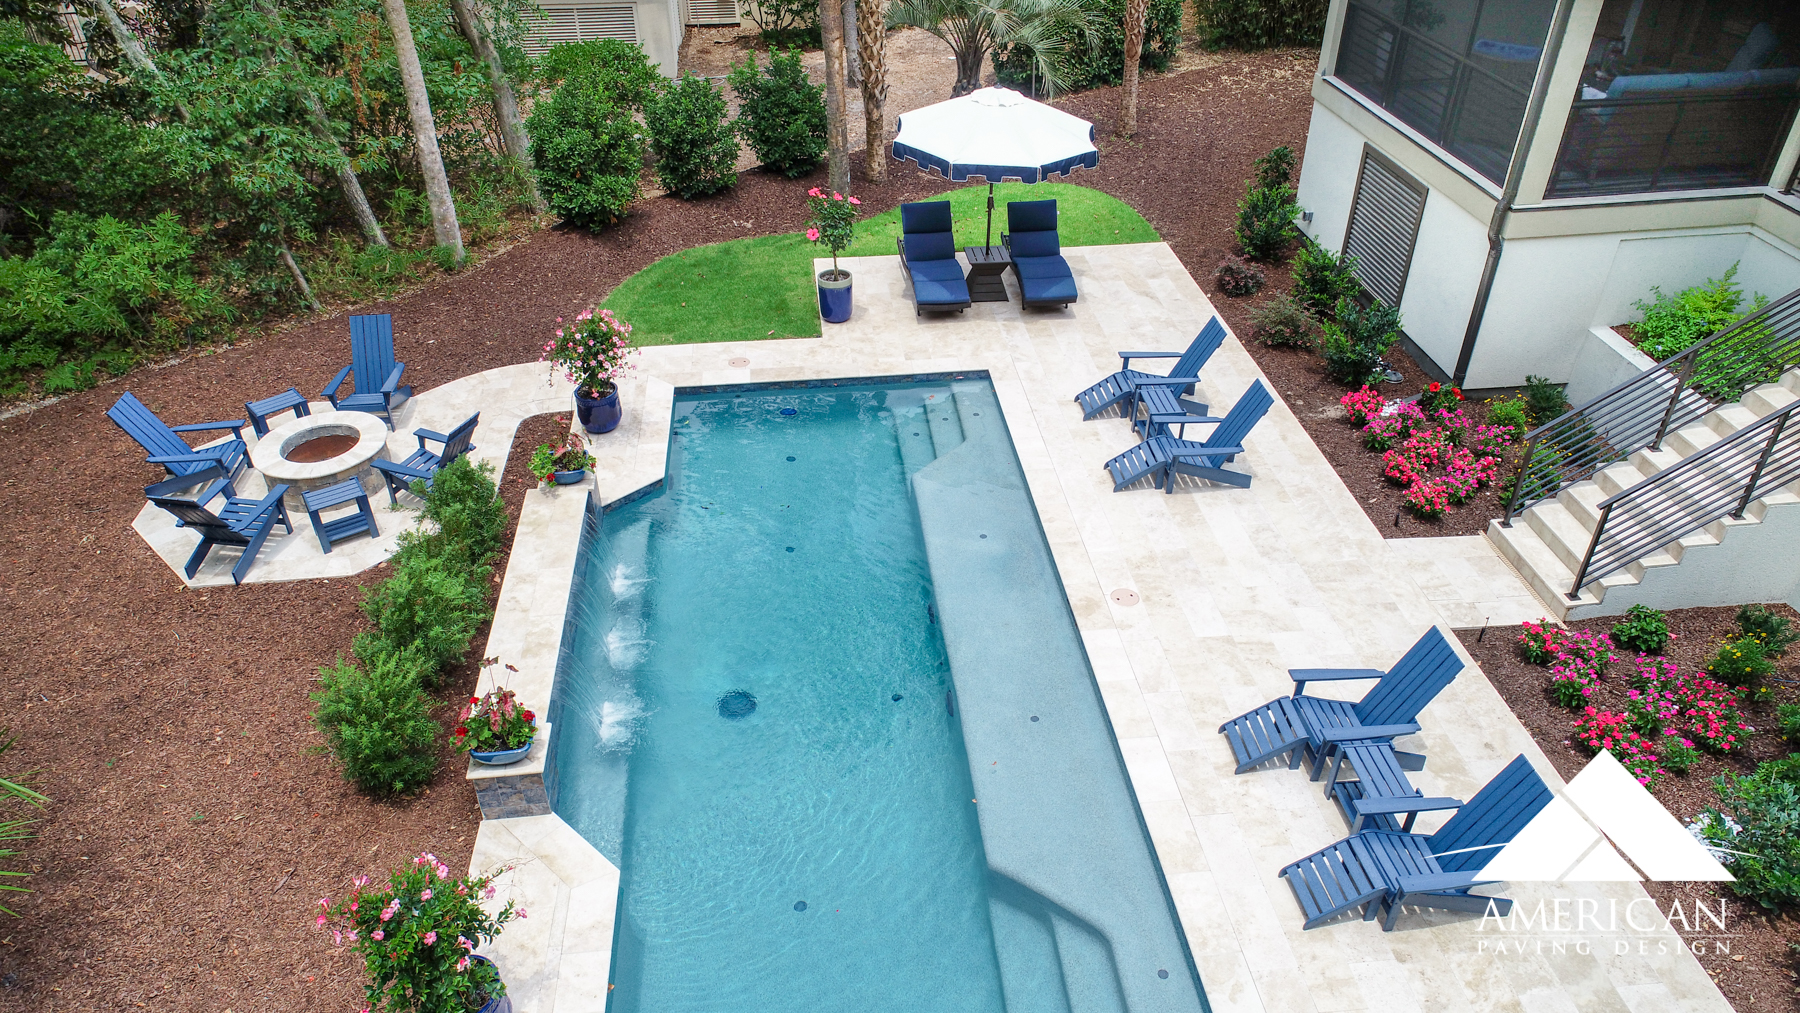 Travertine  pool decks are gorgeous. This natural stone pool deck material will cost you approx. $18-22 a sq ft, depending on size and color options.